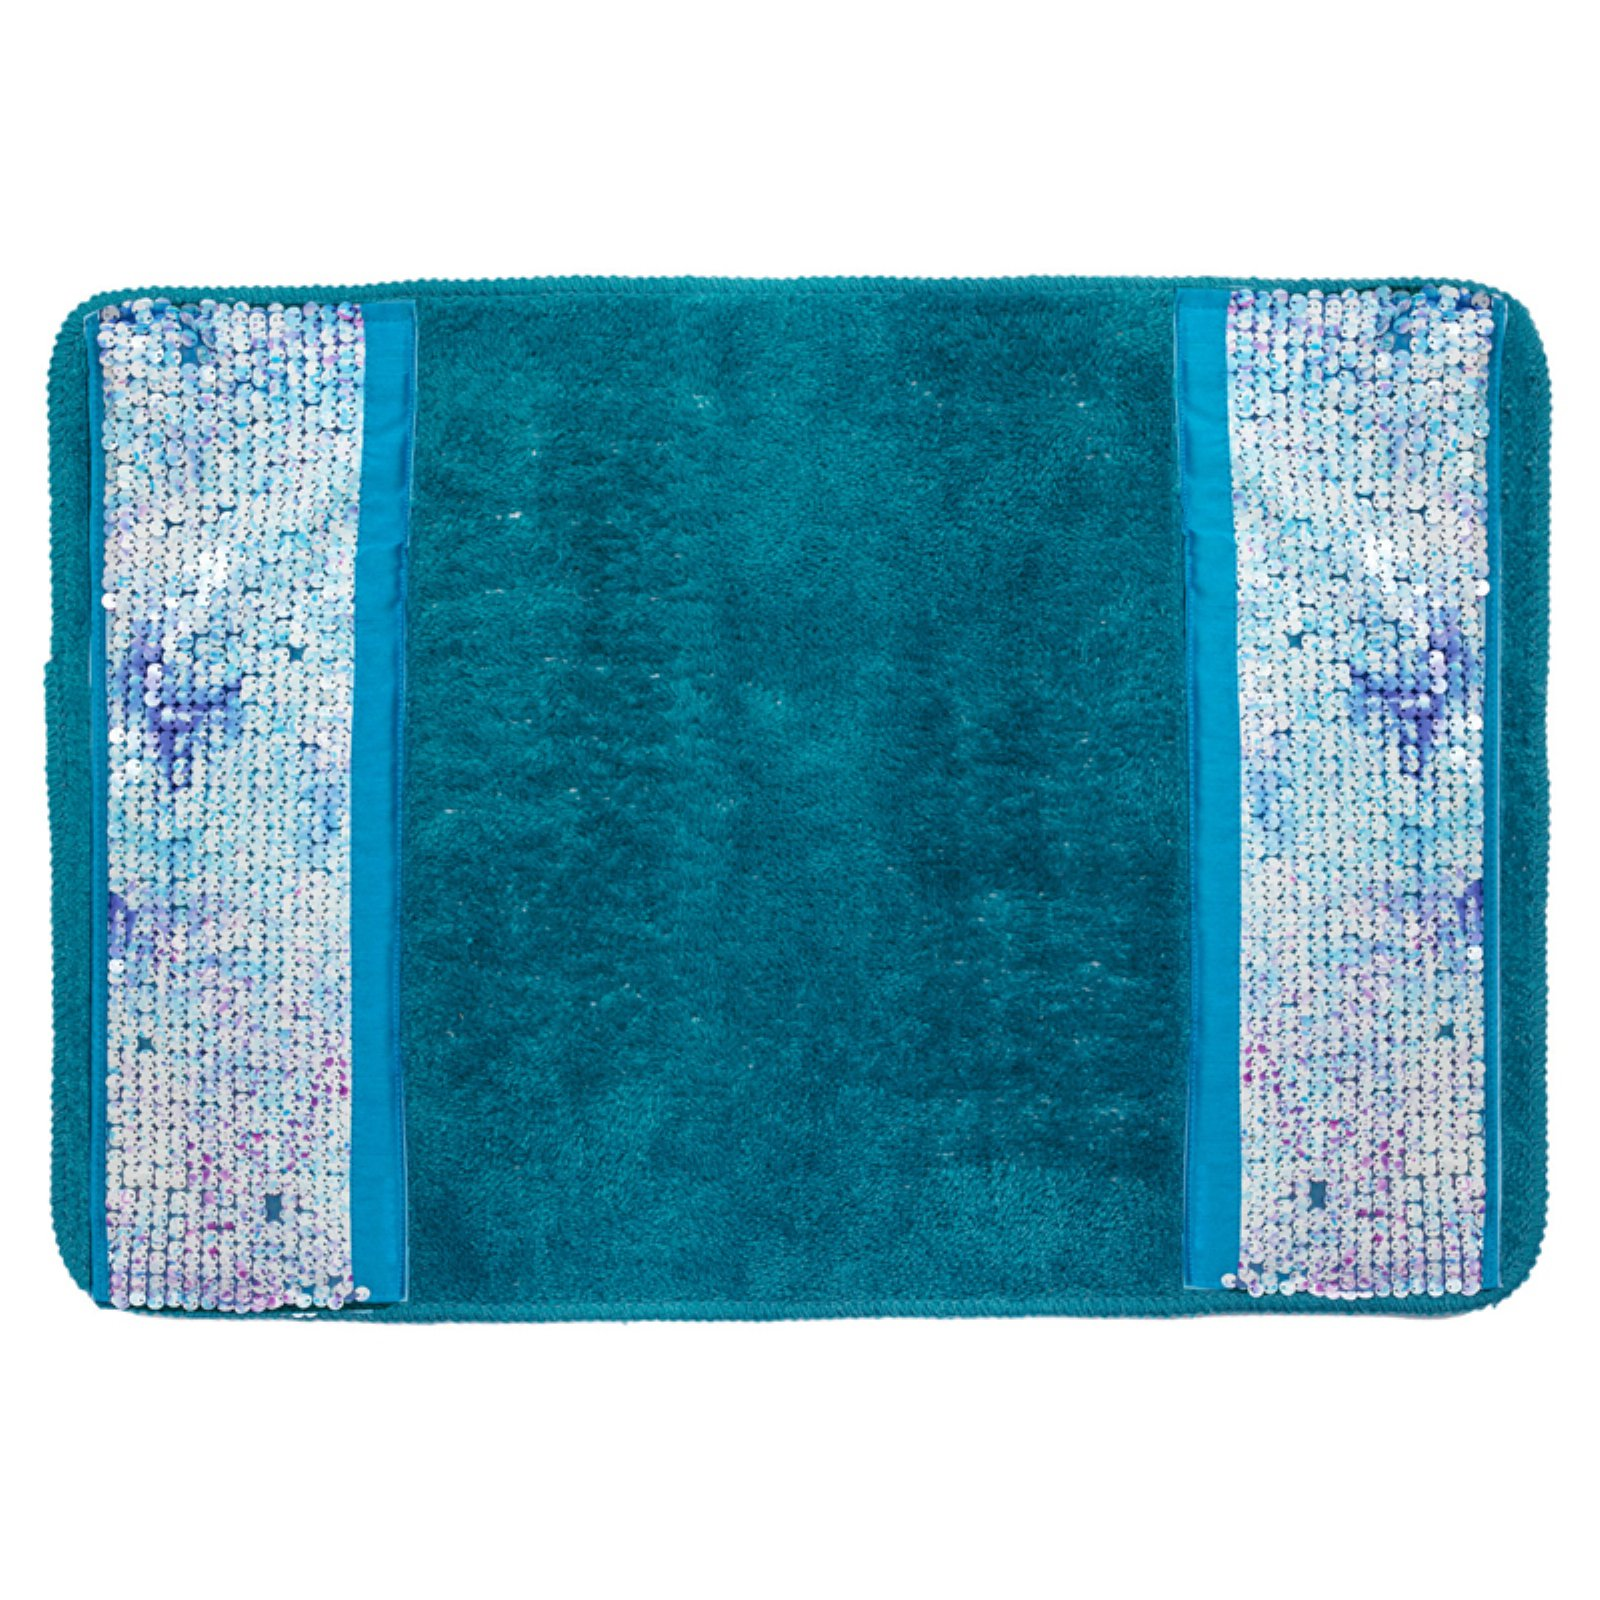 Sweet Home Collection Tammi Aqua Banded Bathroom Rug by Popular Bath Products